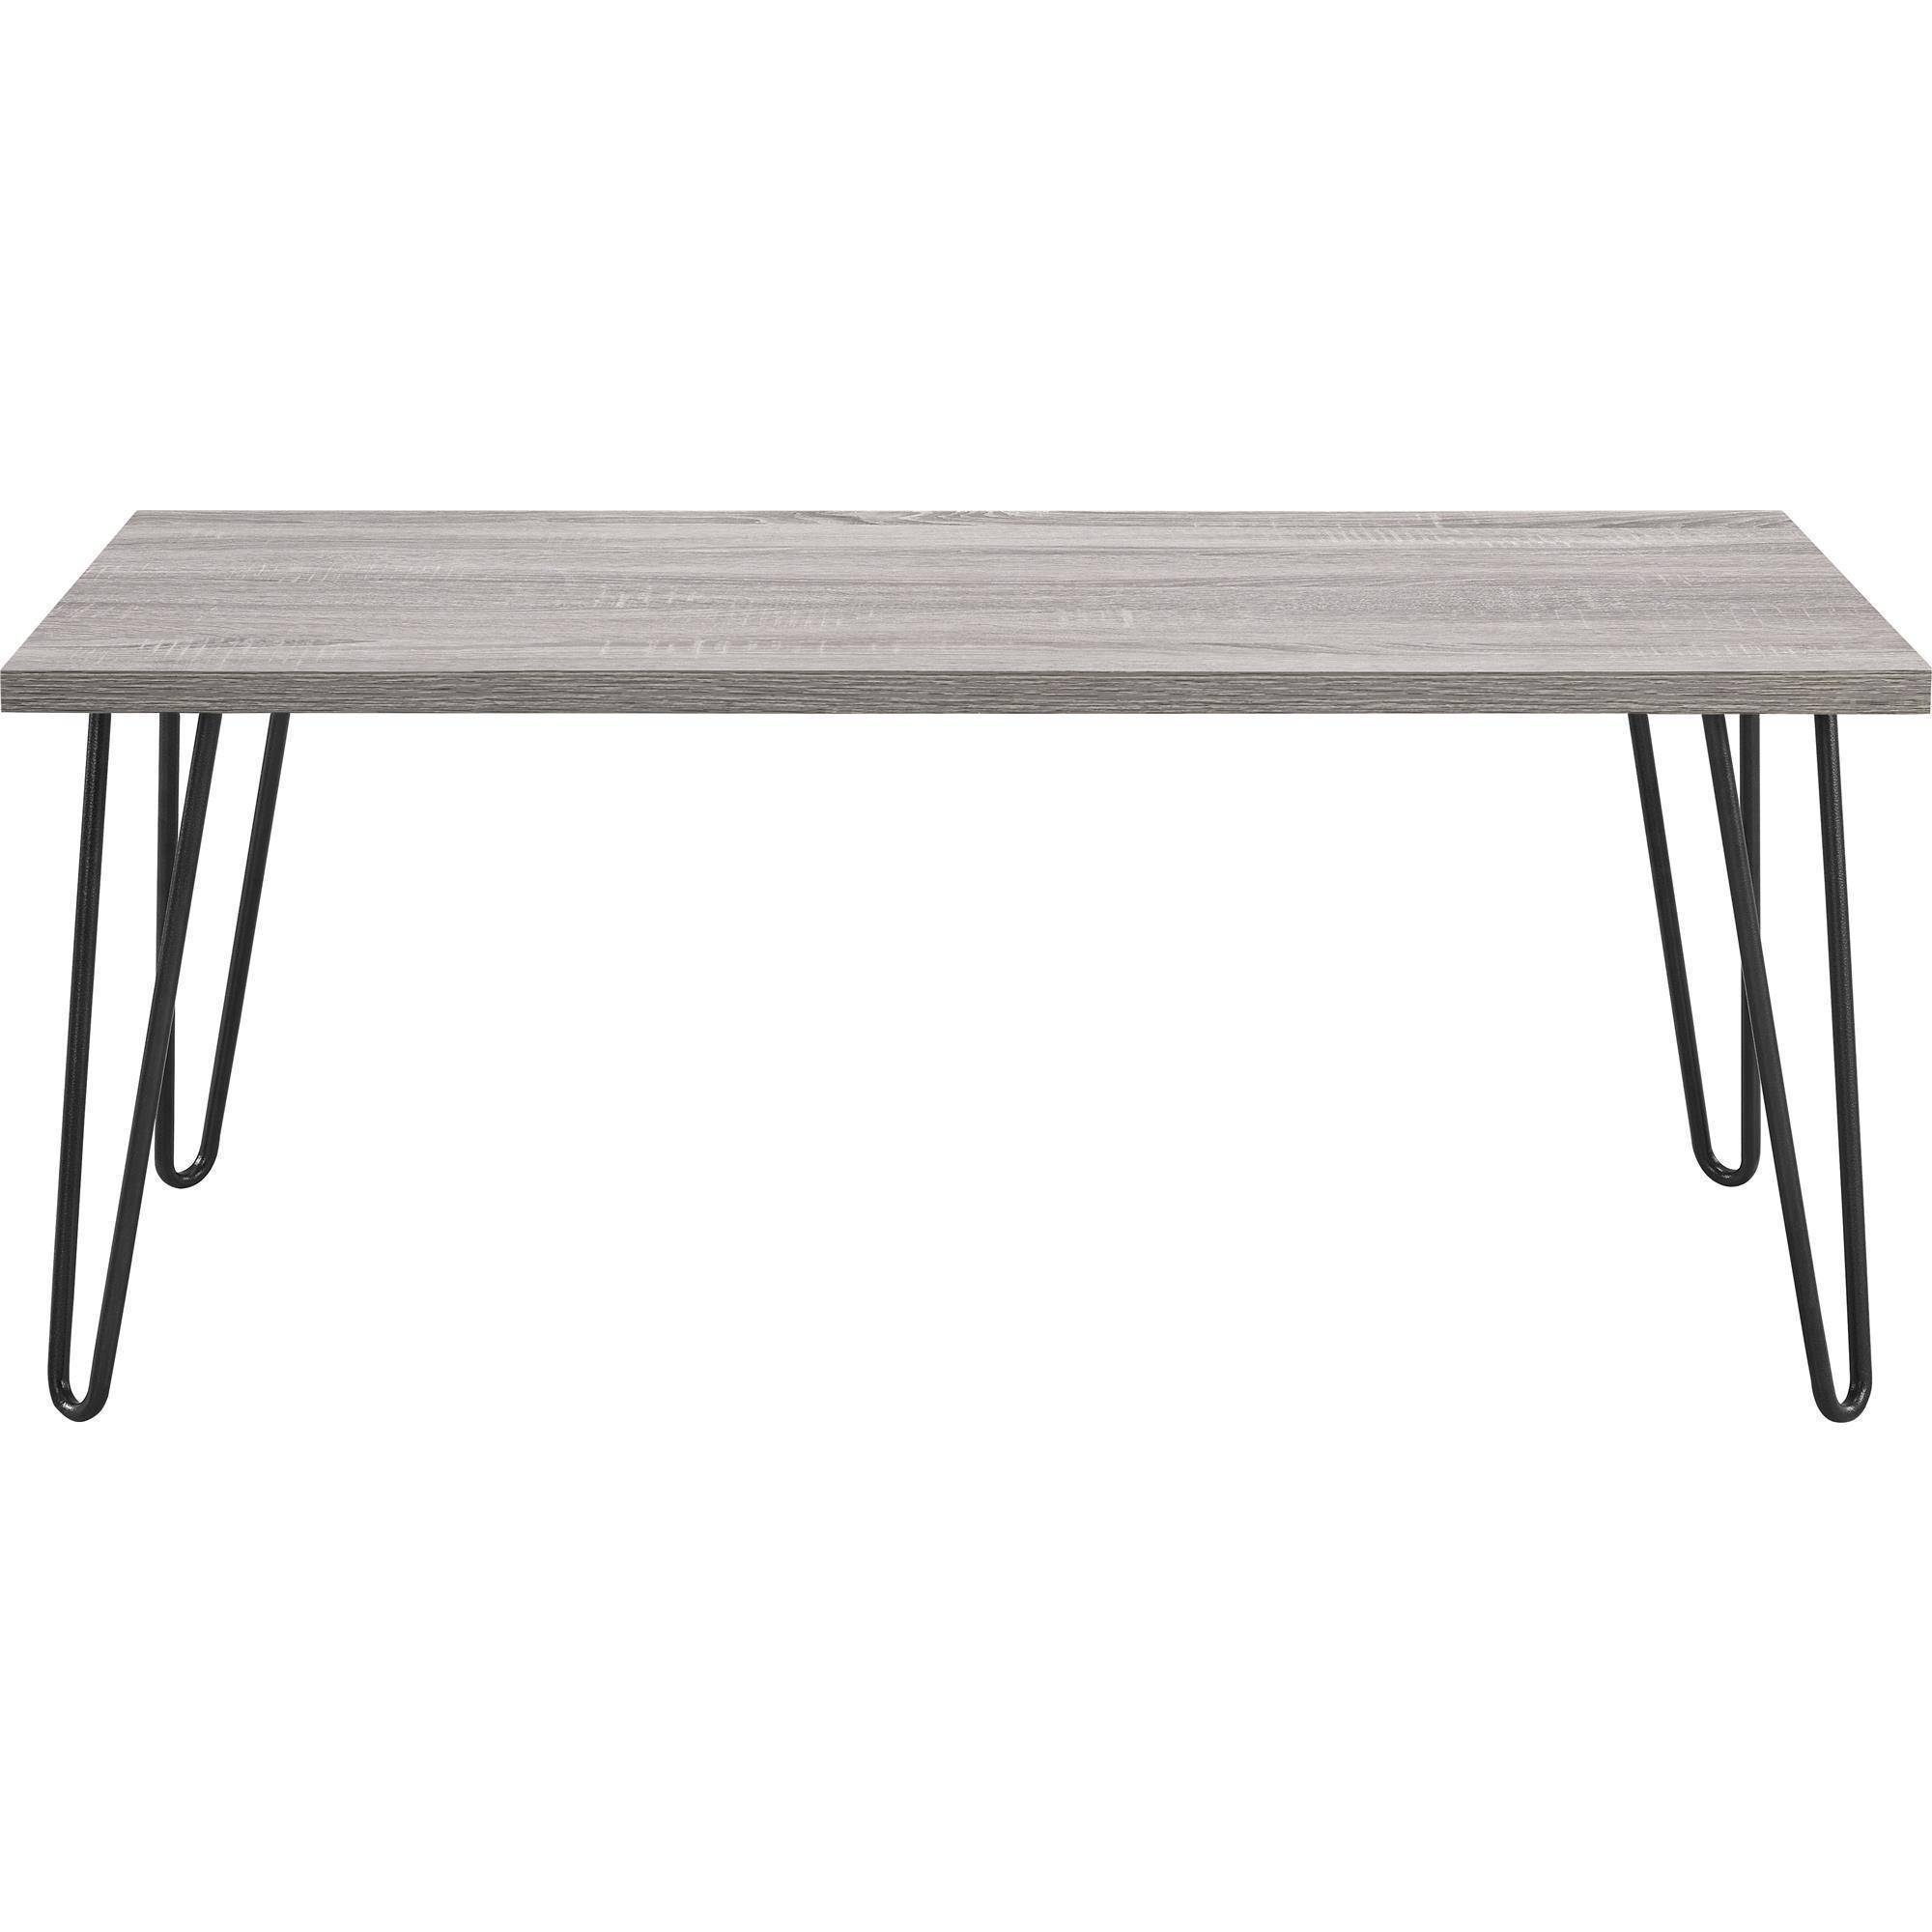 Ameriwood Home Owen Retro Coffee Table, Distressed Gray Oak regarding Retro White Coffee Tables (Image 2 of 30)